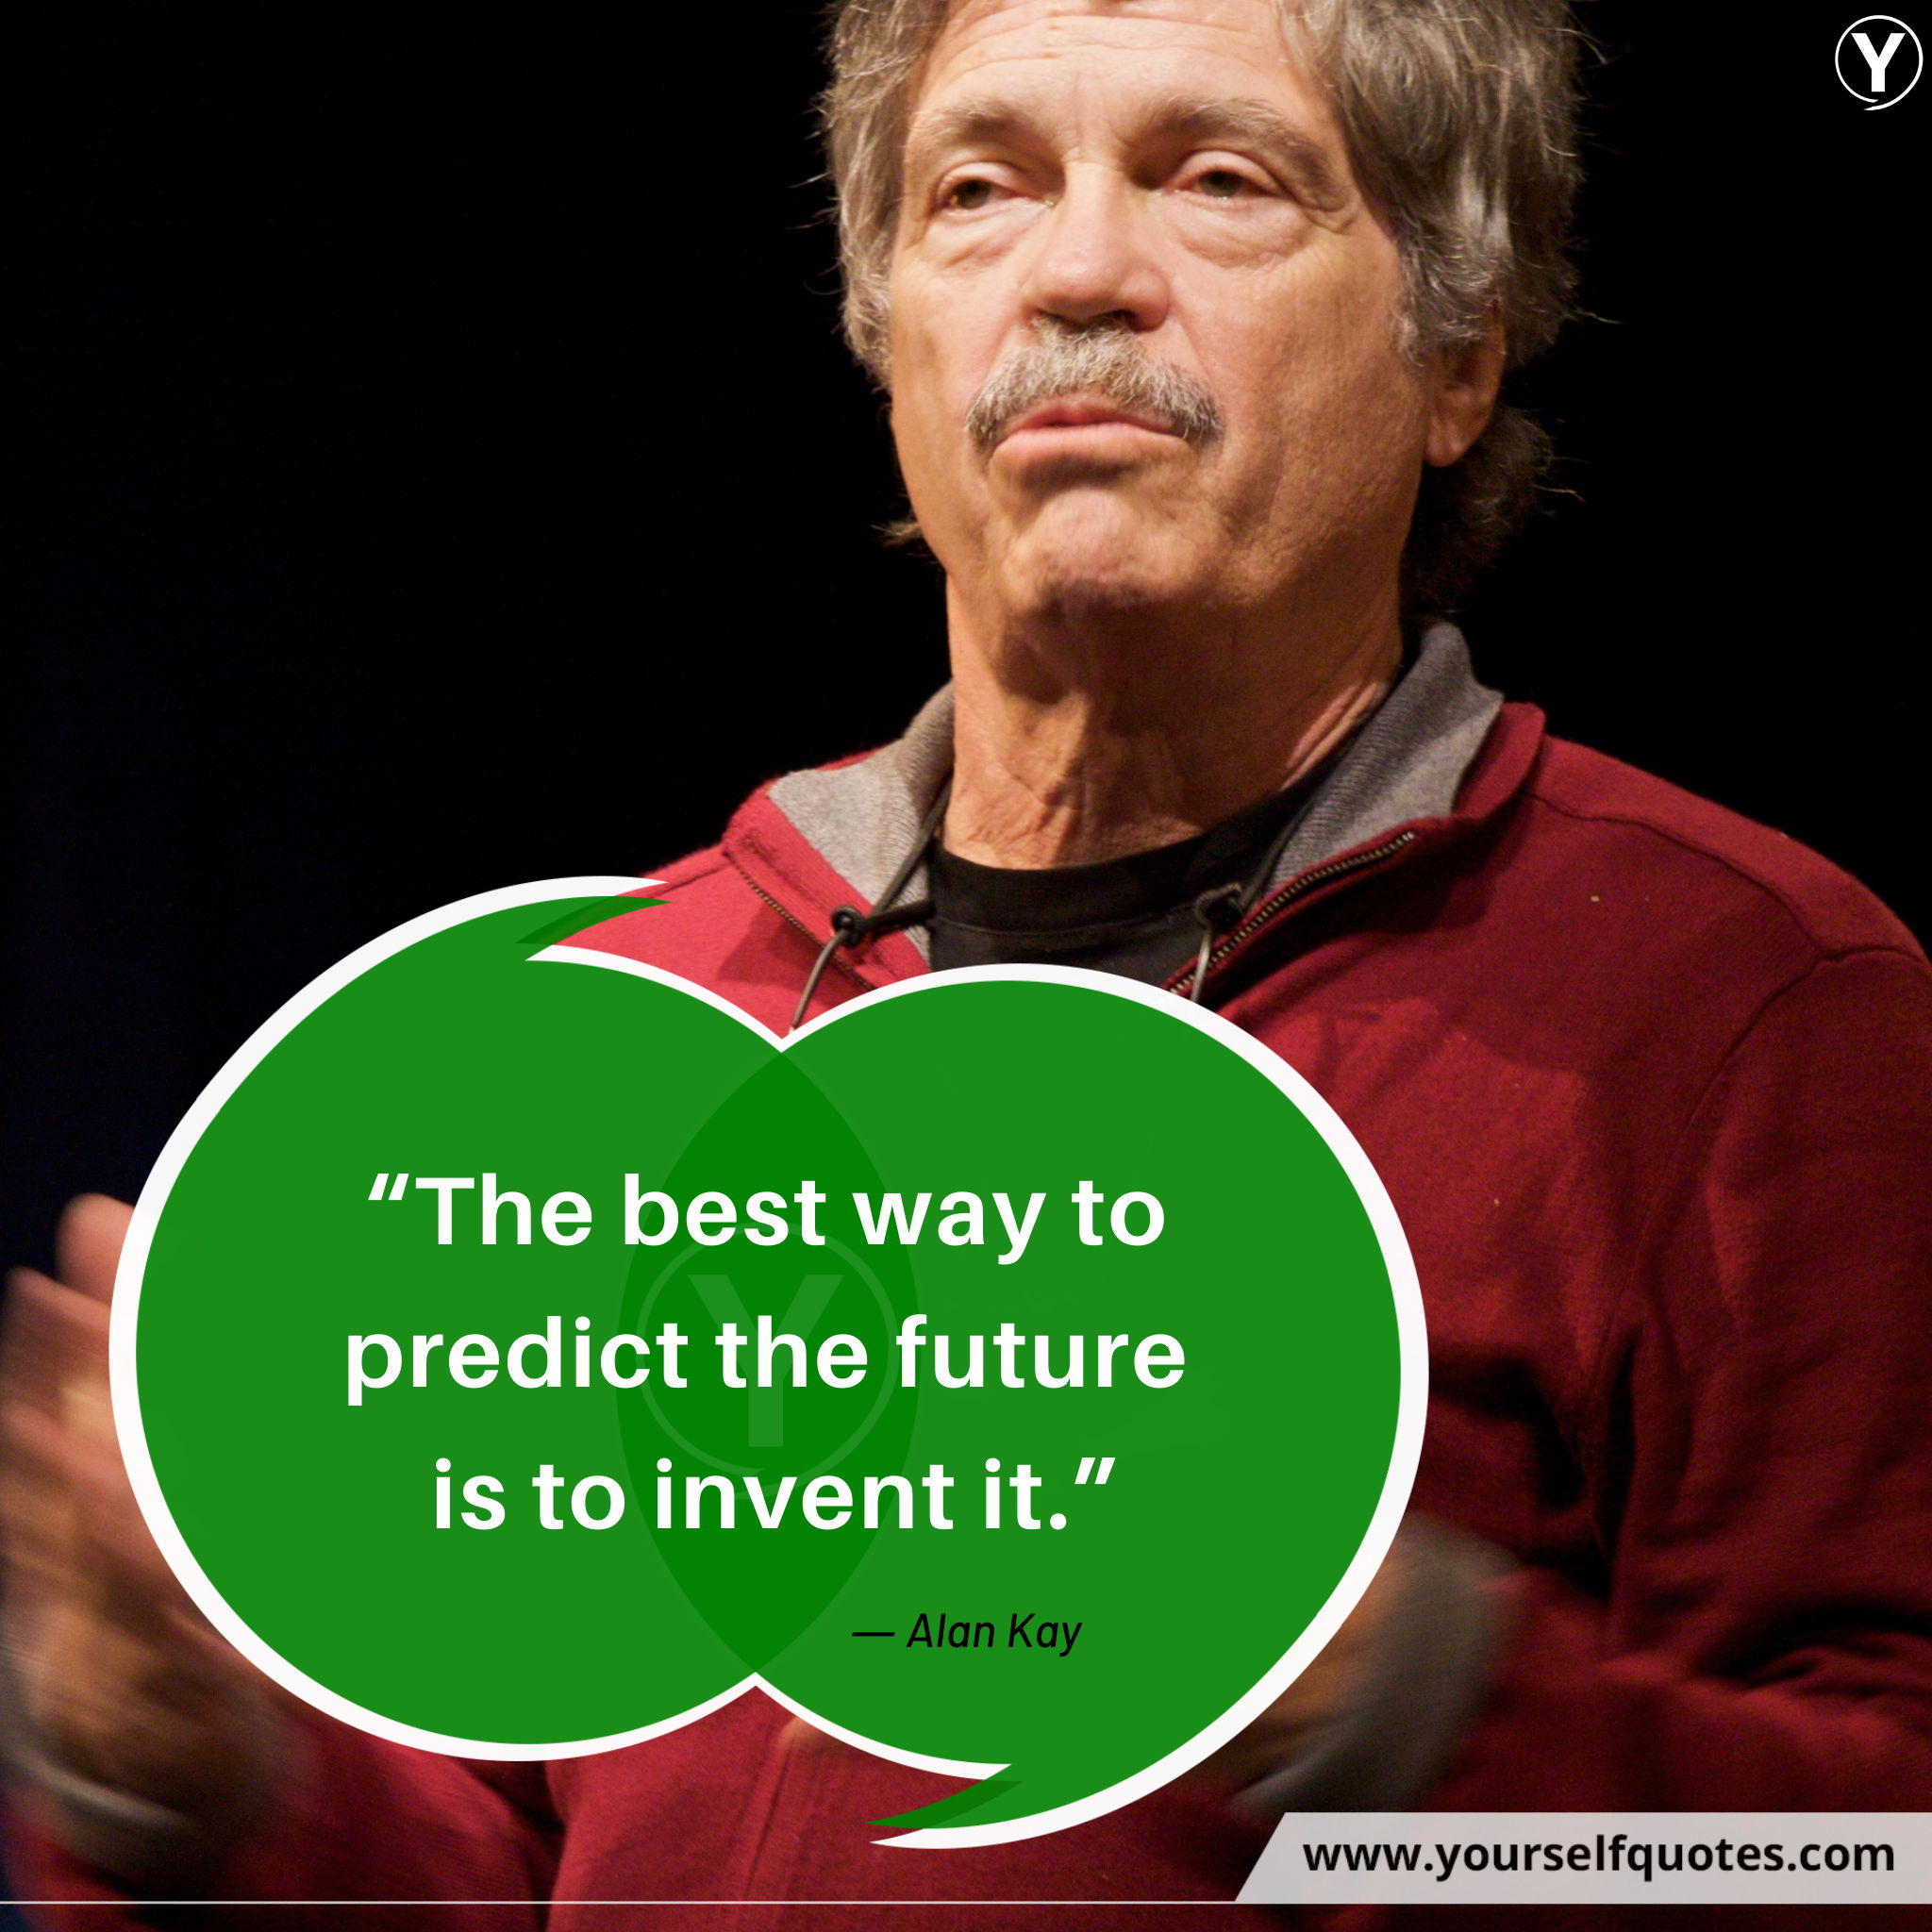 Alan Kay Quotation Images